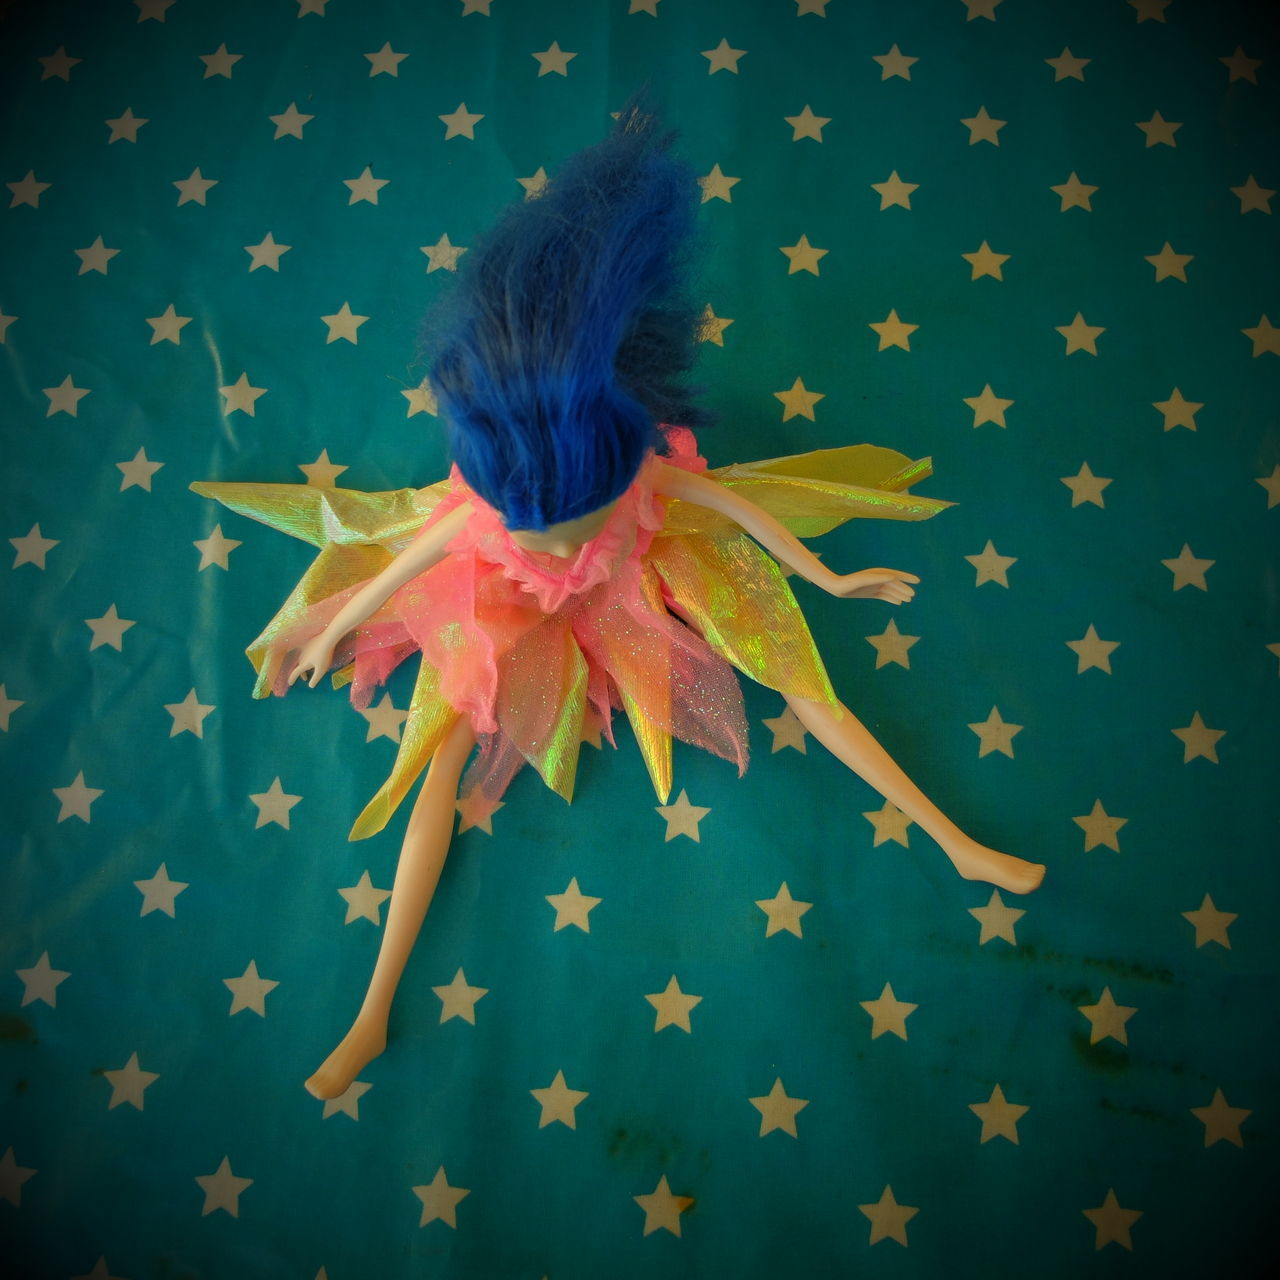 Childhood Close-up Doll From The Top Indoors  Staging Standing Stars Toy